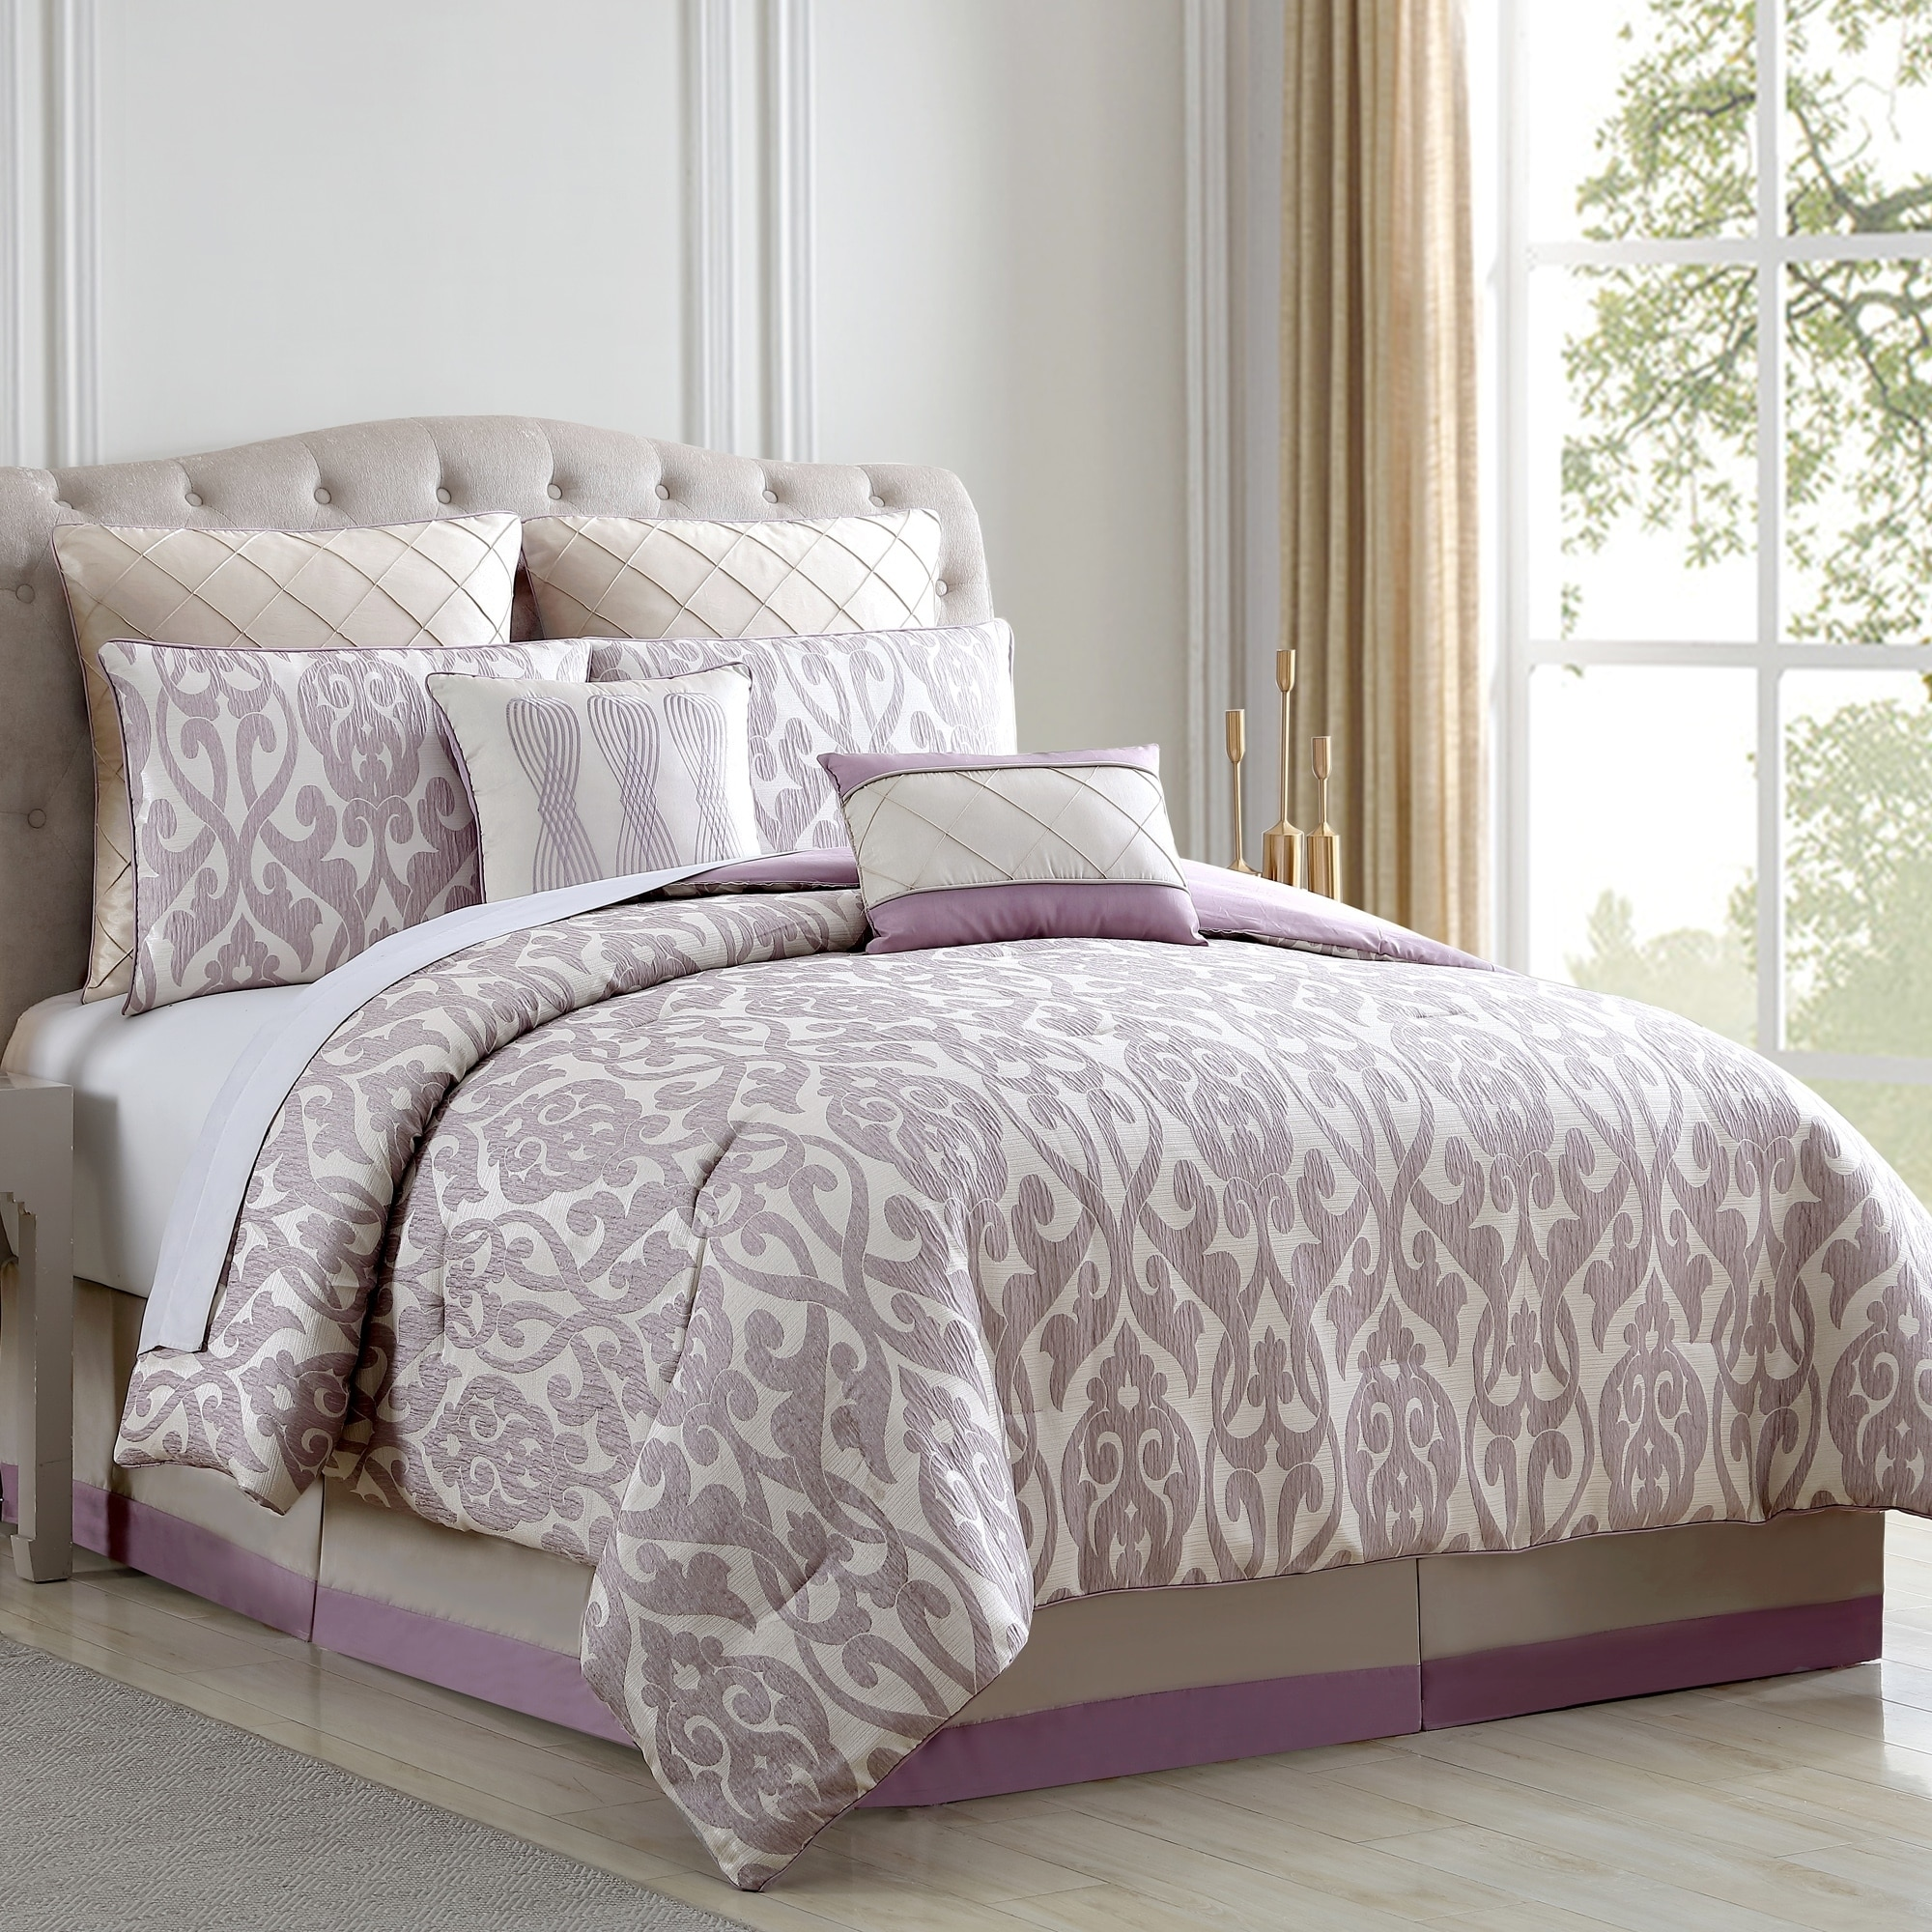 Duvet And Comforter Sets Amraupur Overseas Alina Floral Damask 8 Piece Comforter Set